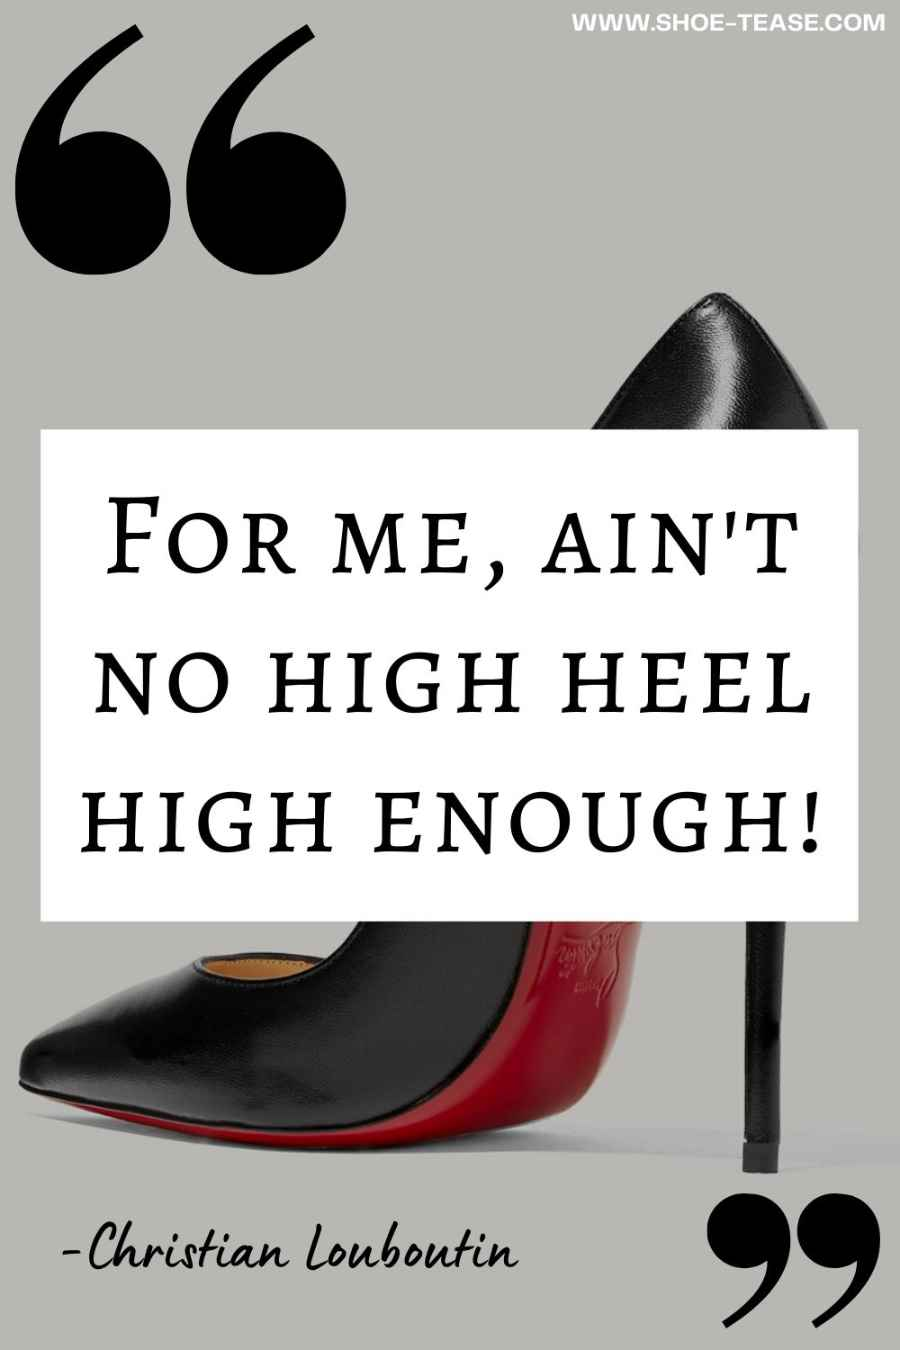 """Black text in white box reading """" For me, ain't no high heel high enough"""" by Christian Louboutin, over image of Black Pigalle stiletto leather pumps with red soles."""